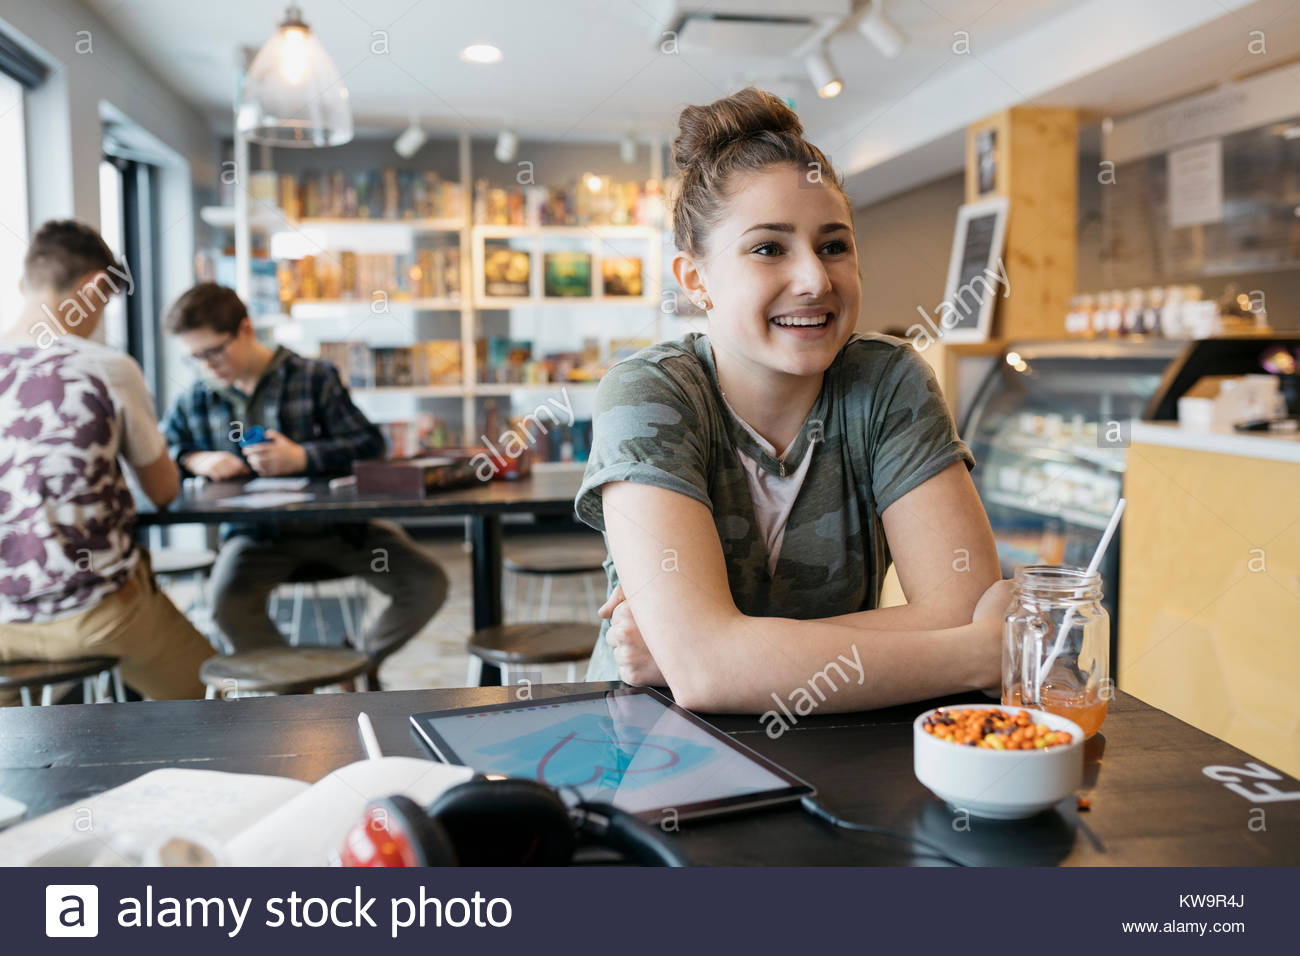 Smiling Caucasian girl high school student with digital tablet étudier au cafe Photo Stock